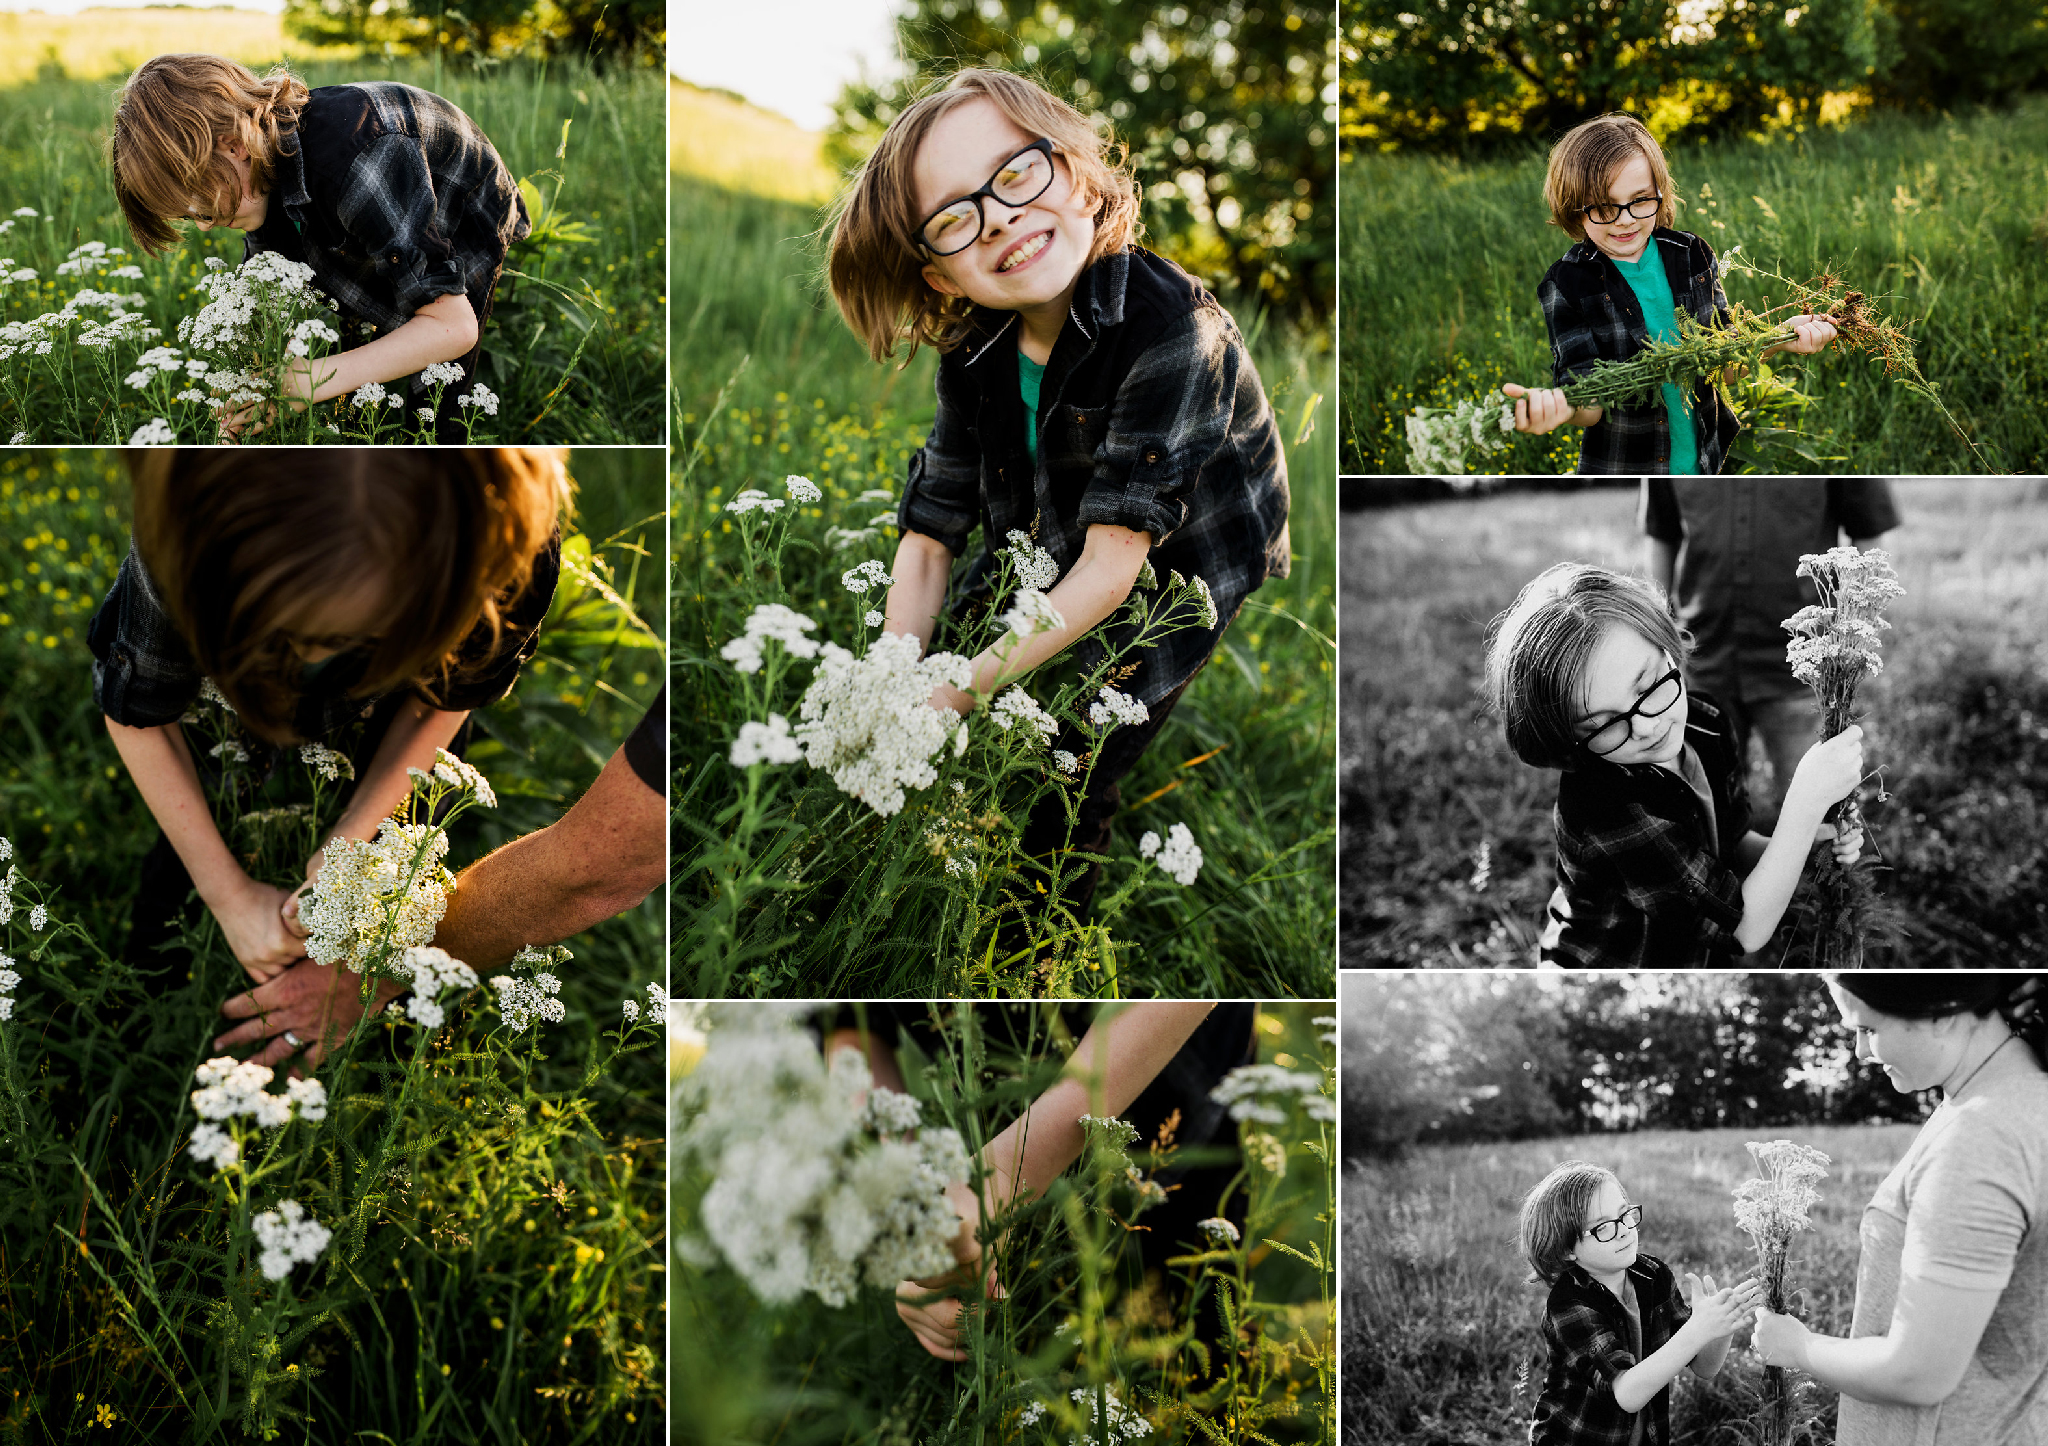 Will-picking-flowers-field-mothers-day-mom-adoption-autism